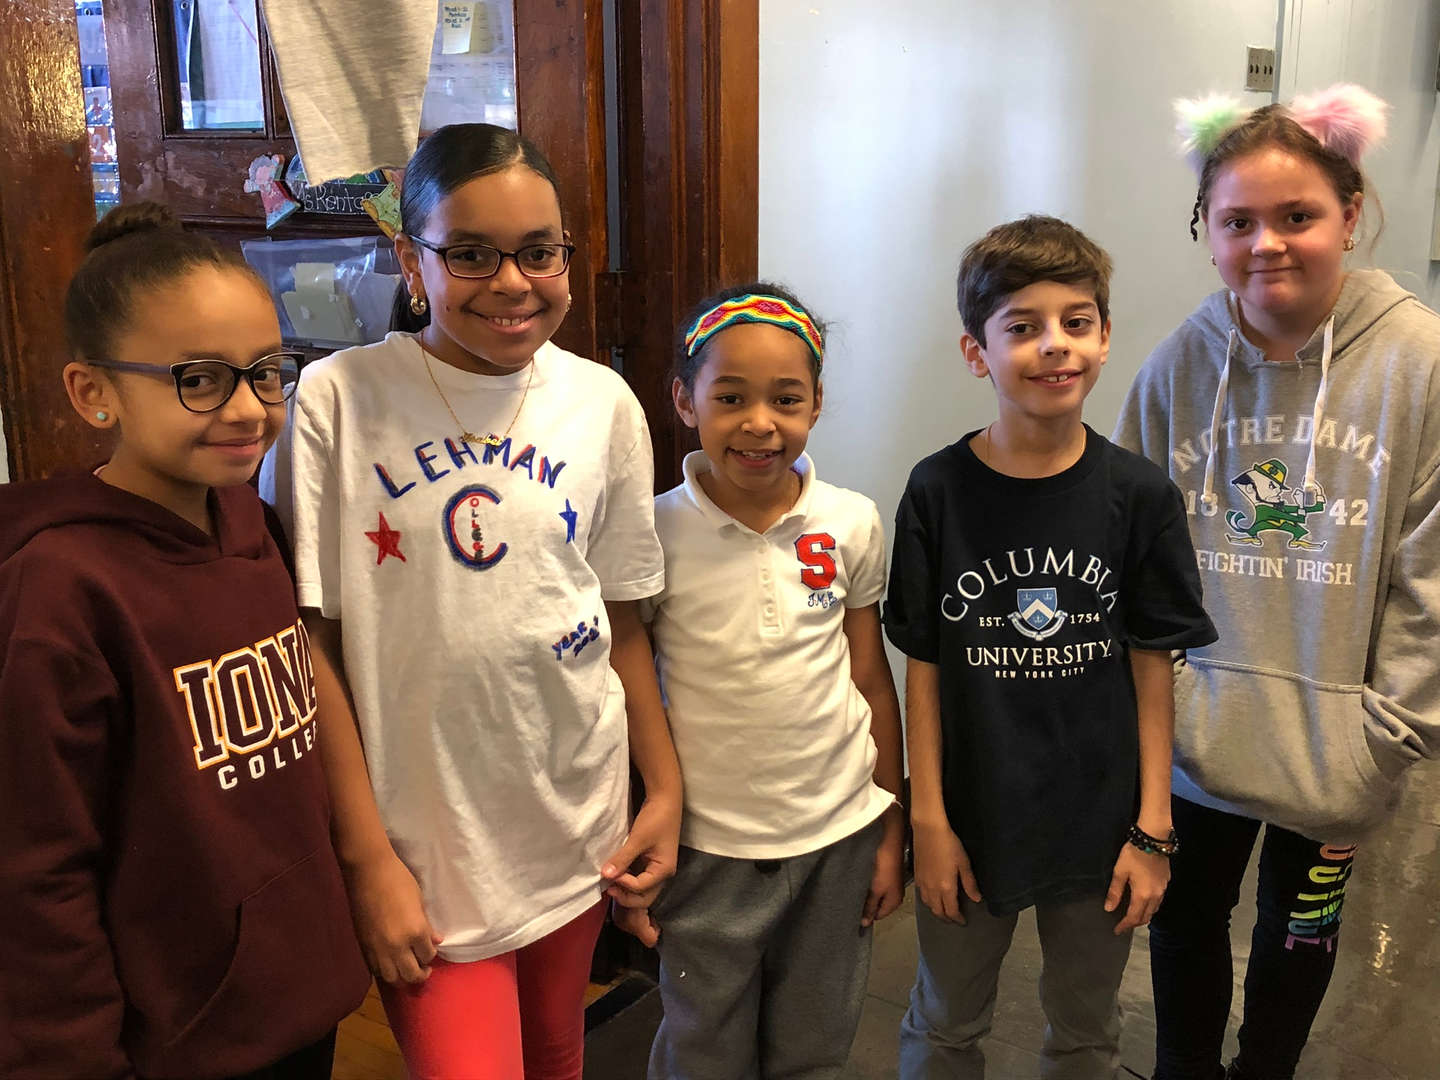 5th graders showing their college gear.